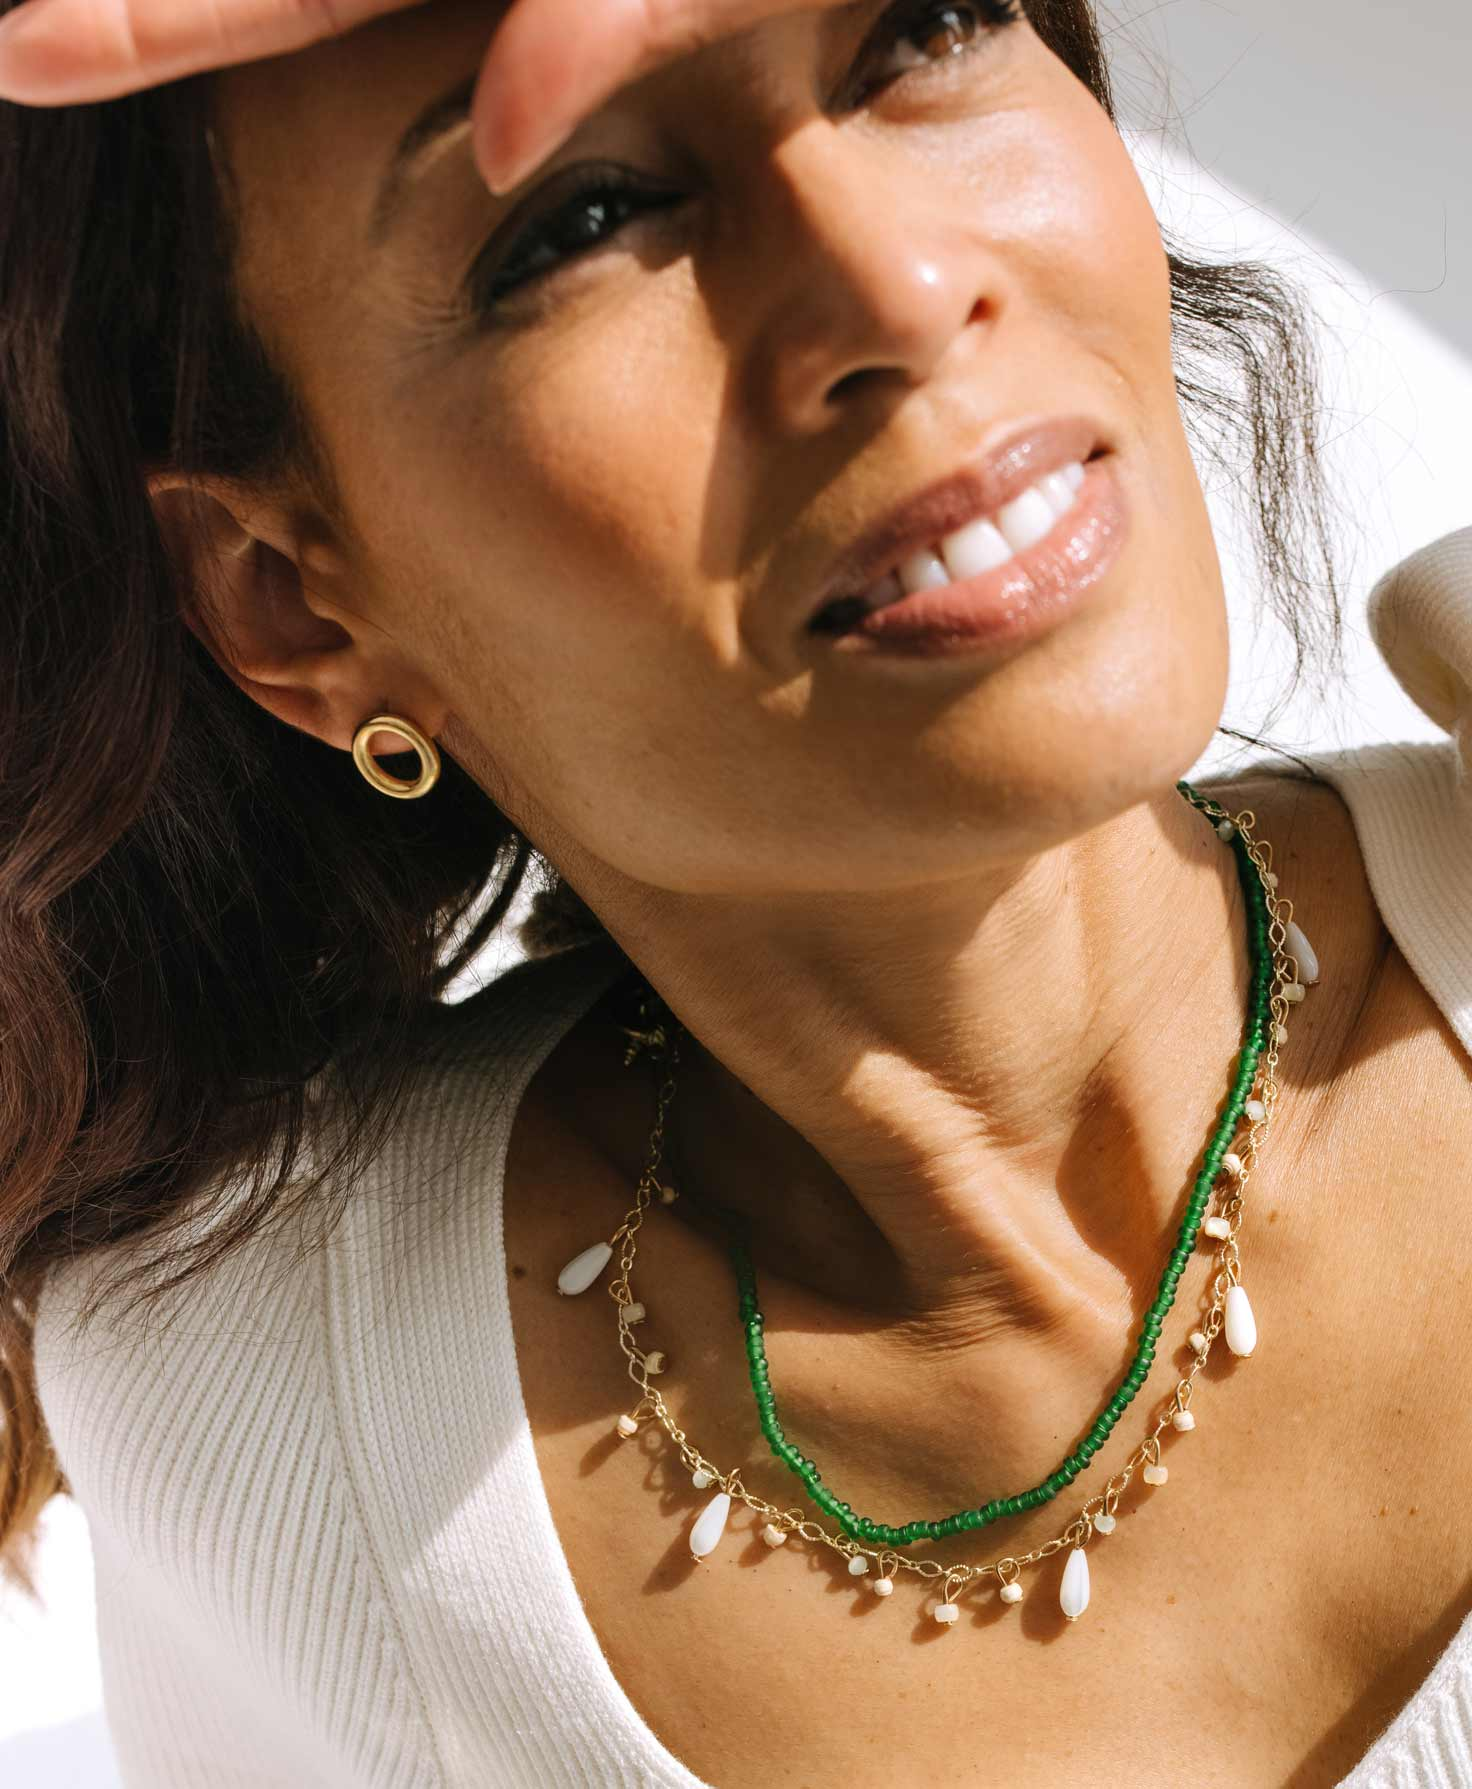 A model wears the Shipshape Necklace layered with the bright green Fern Necklace. She finishes her look with the golden Revolve Earrings.